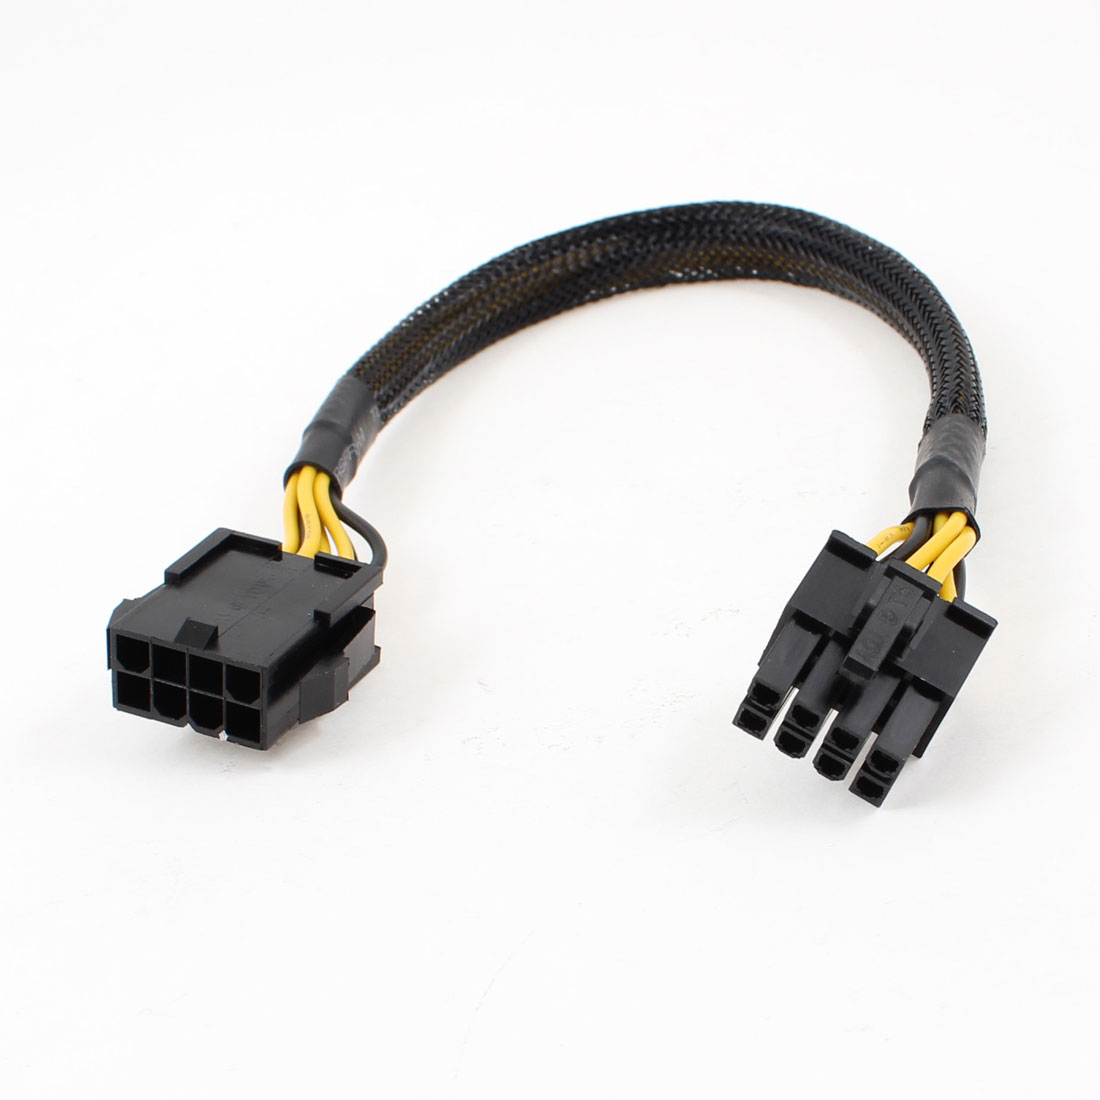 Black Sleeved 8 Pin PCI Express PCIE Power Cable Male to Female